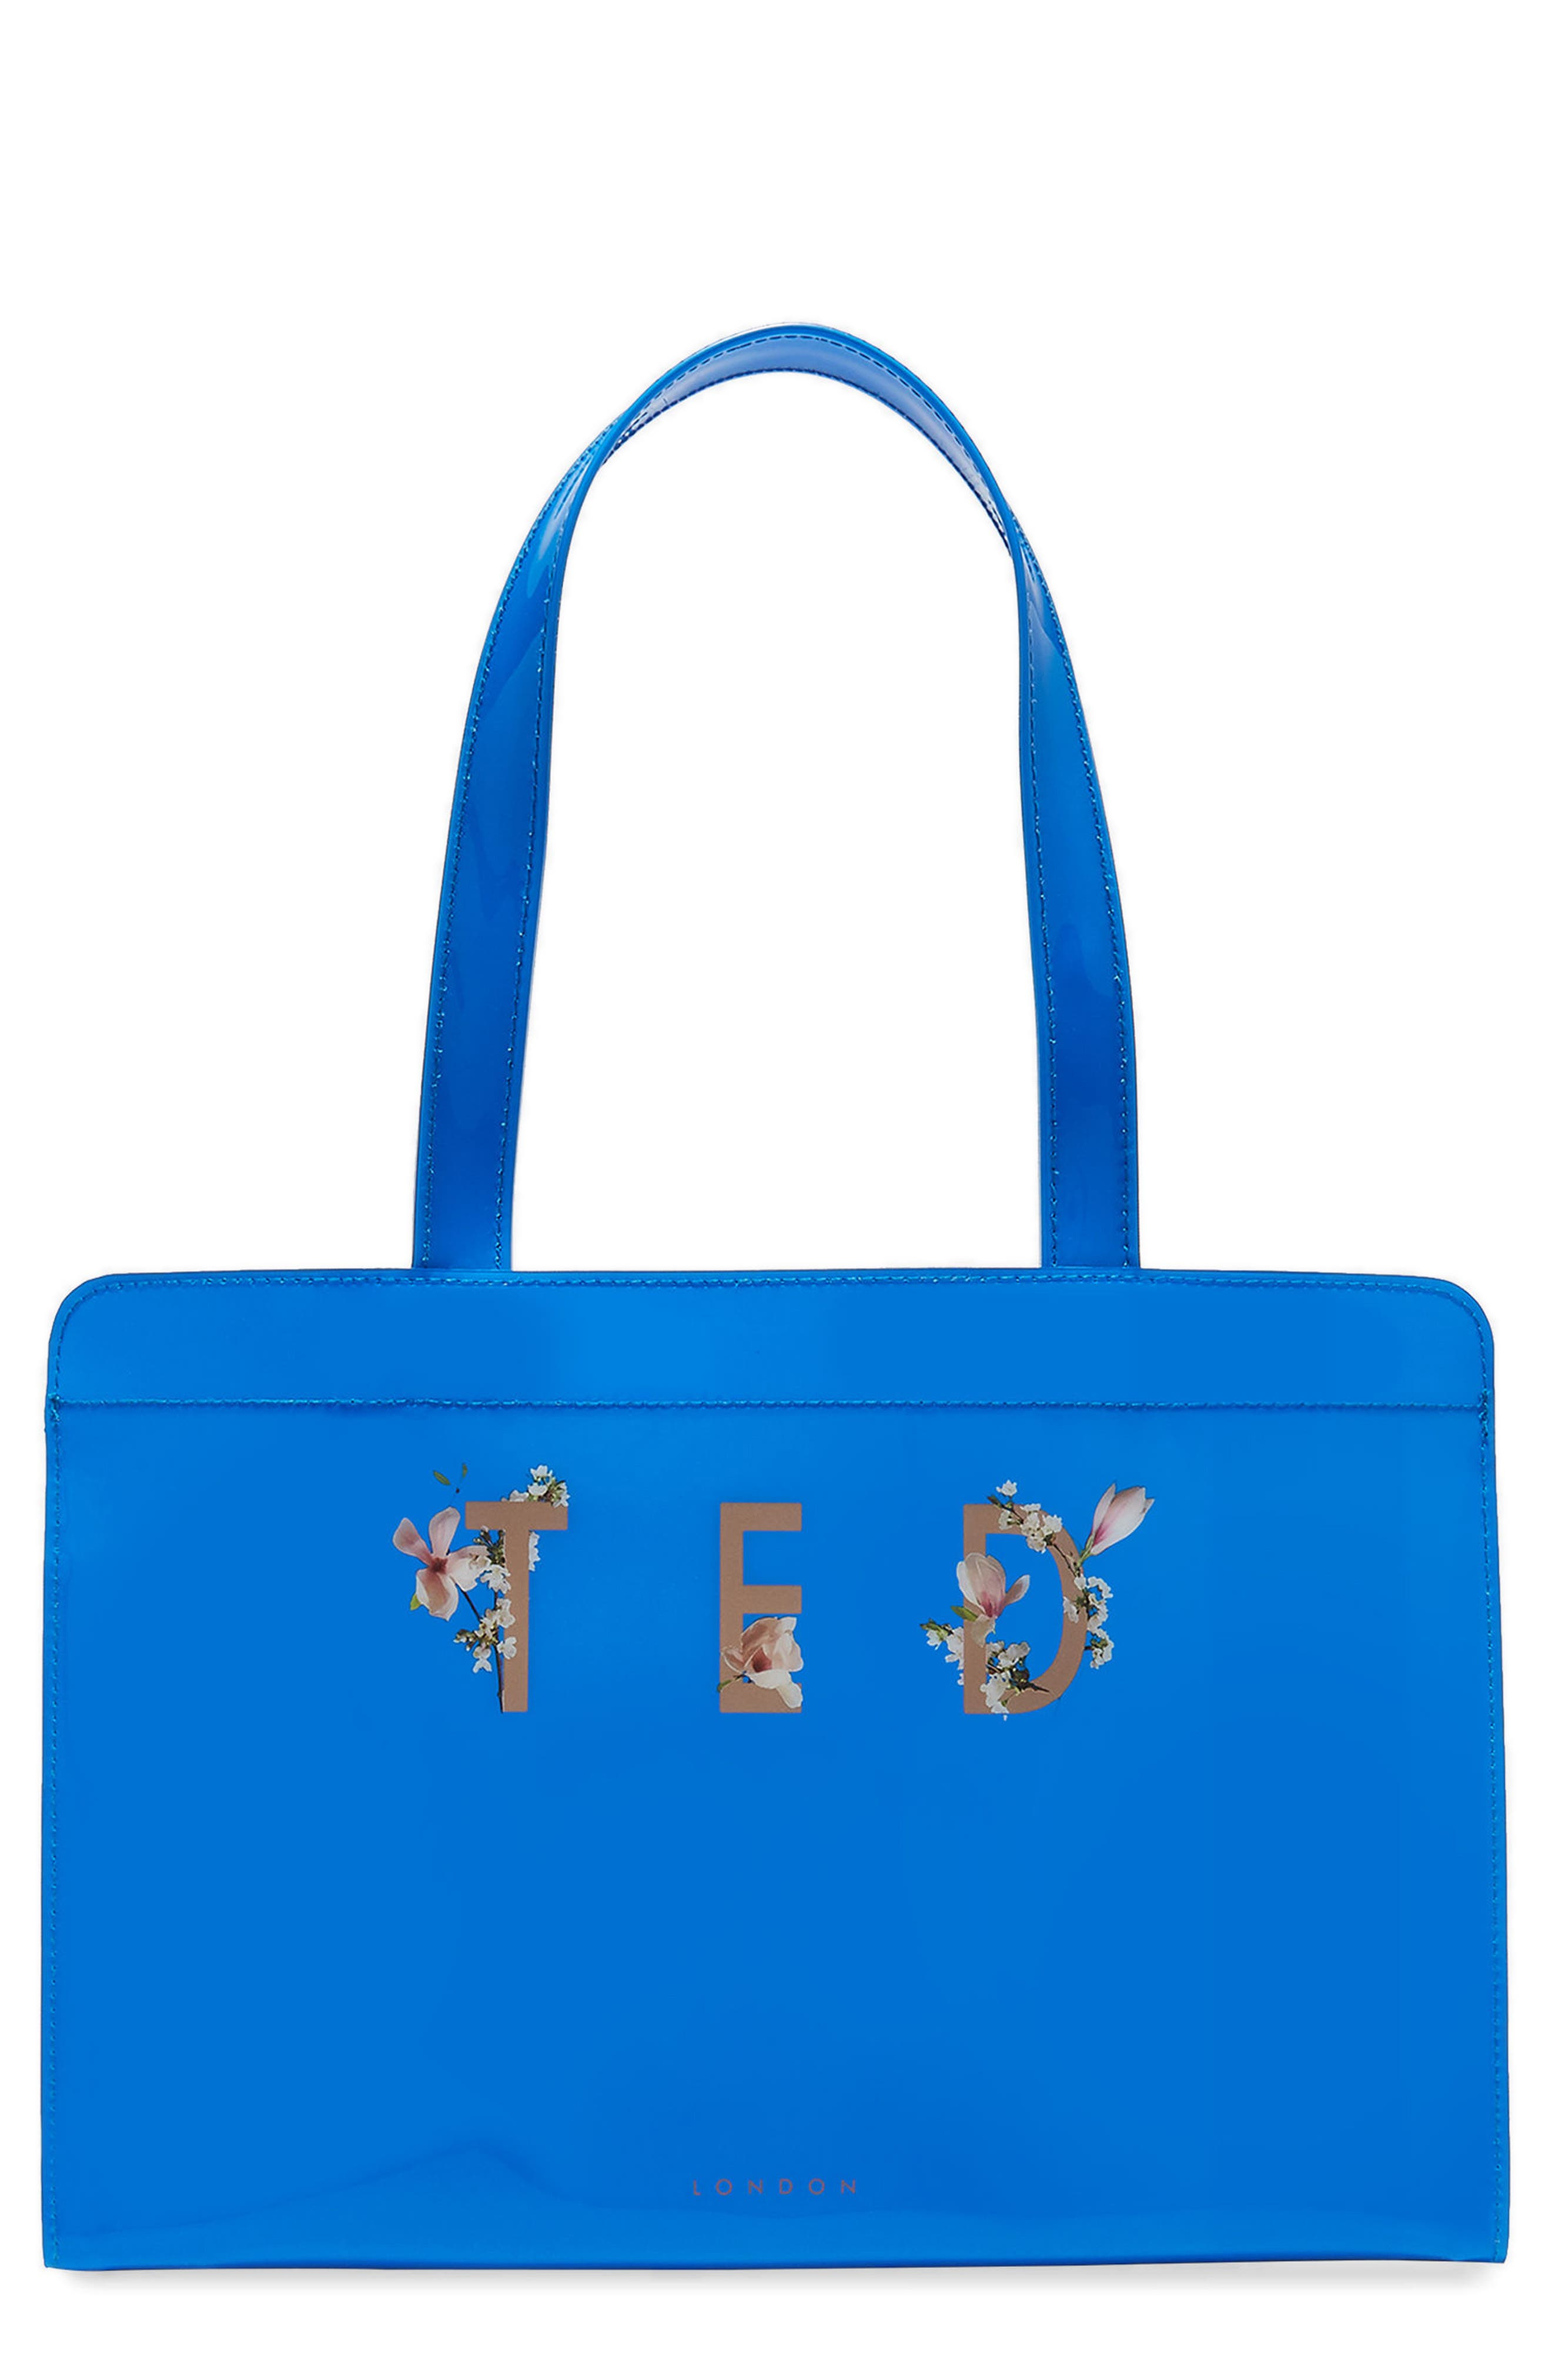 Fizz Tote,                             Main thumbnail 1, color,                             Bright Blue